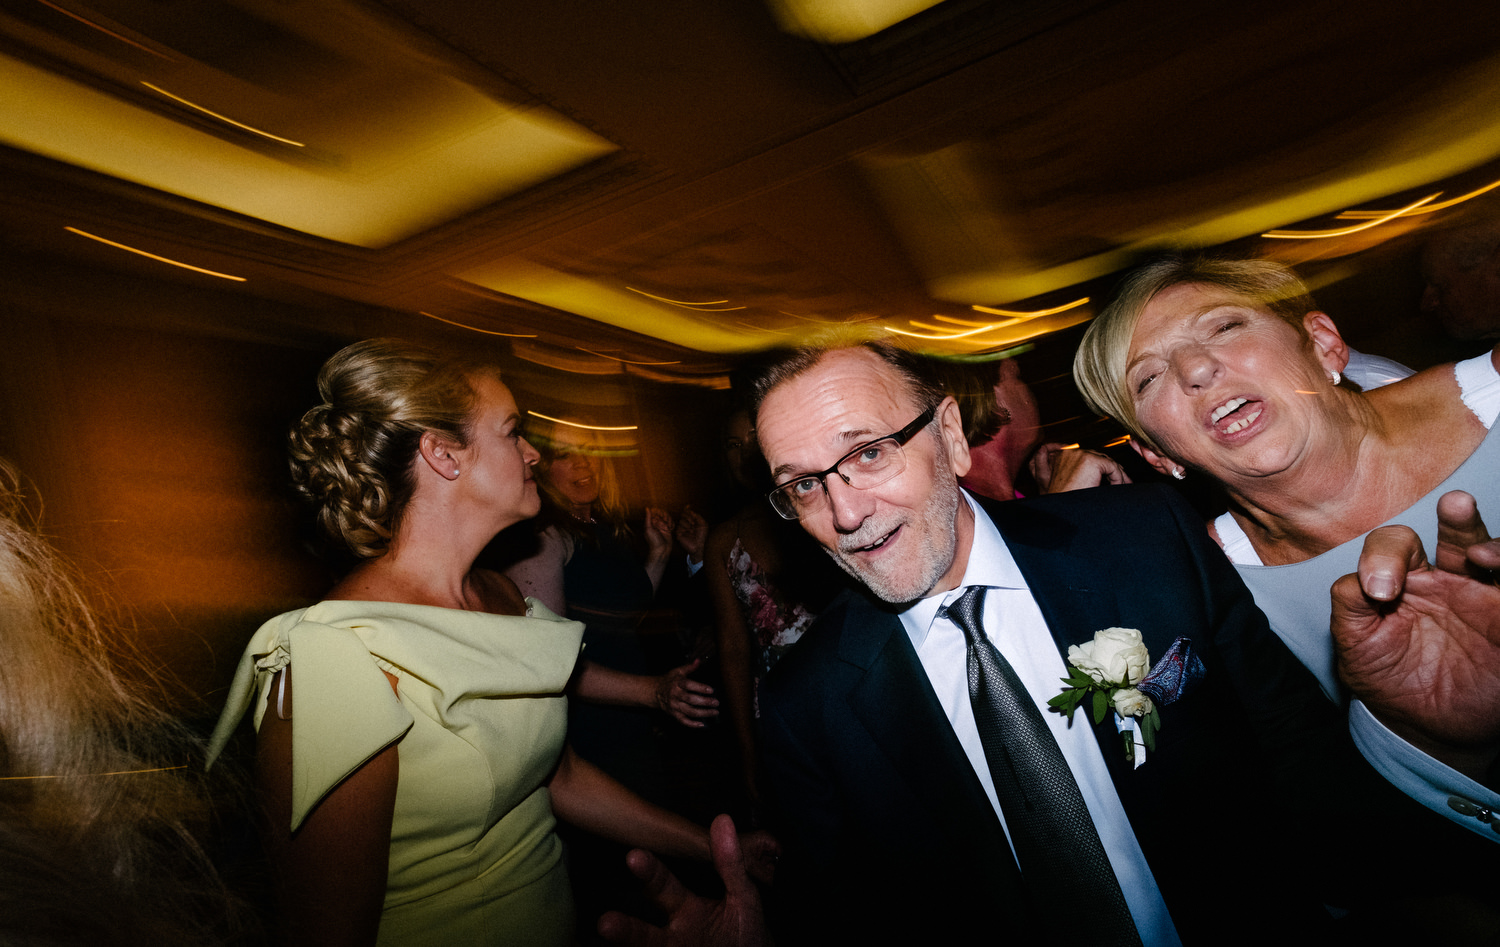 dmp0699_photographer_wedding_dublin_david_mcclelland_candid_photography_fujifilm_shelbourne_reception_documentary